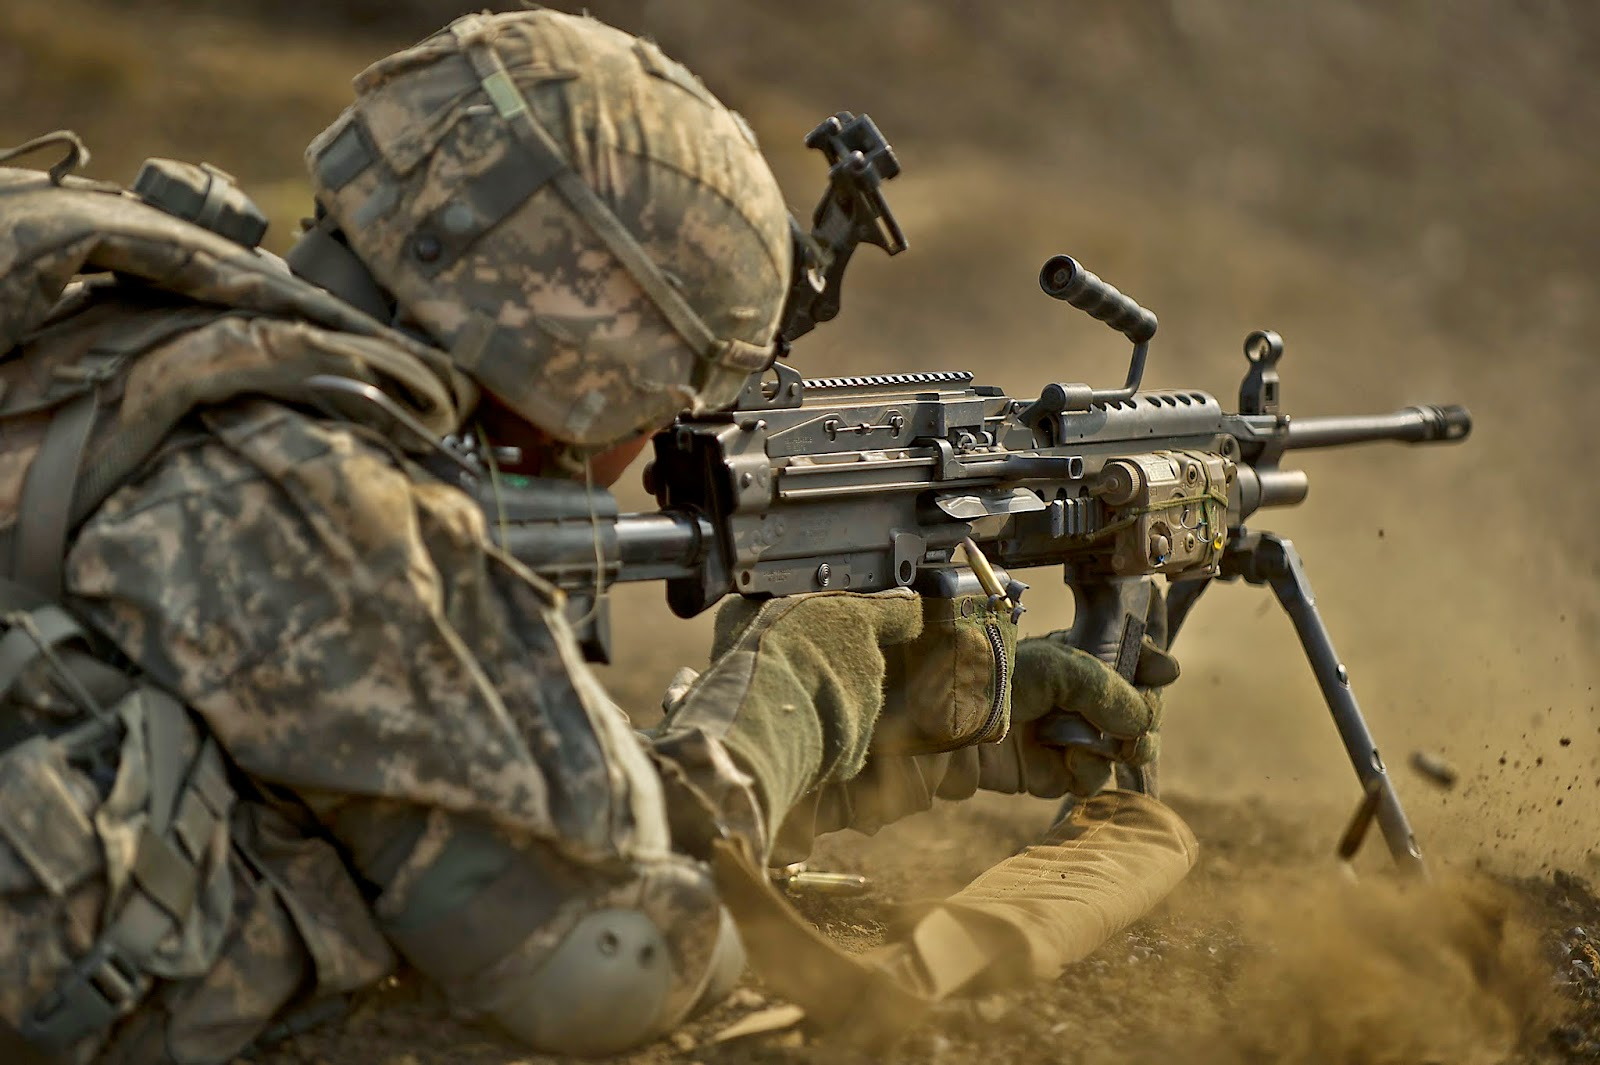 Best Wallpaper: USA Army Wapens Hd Wallpapers Free Download